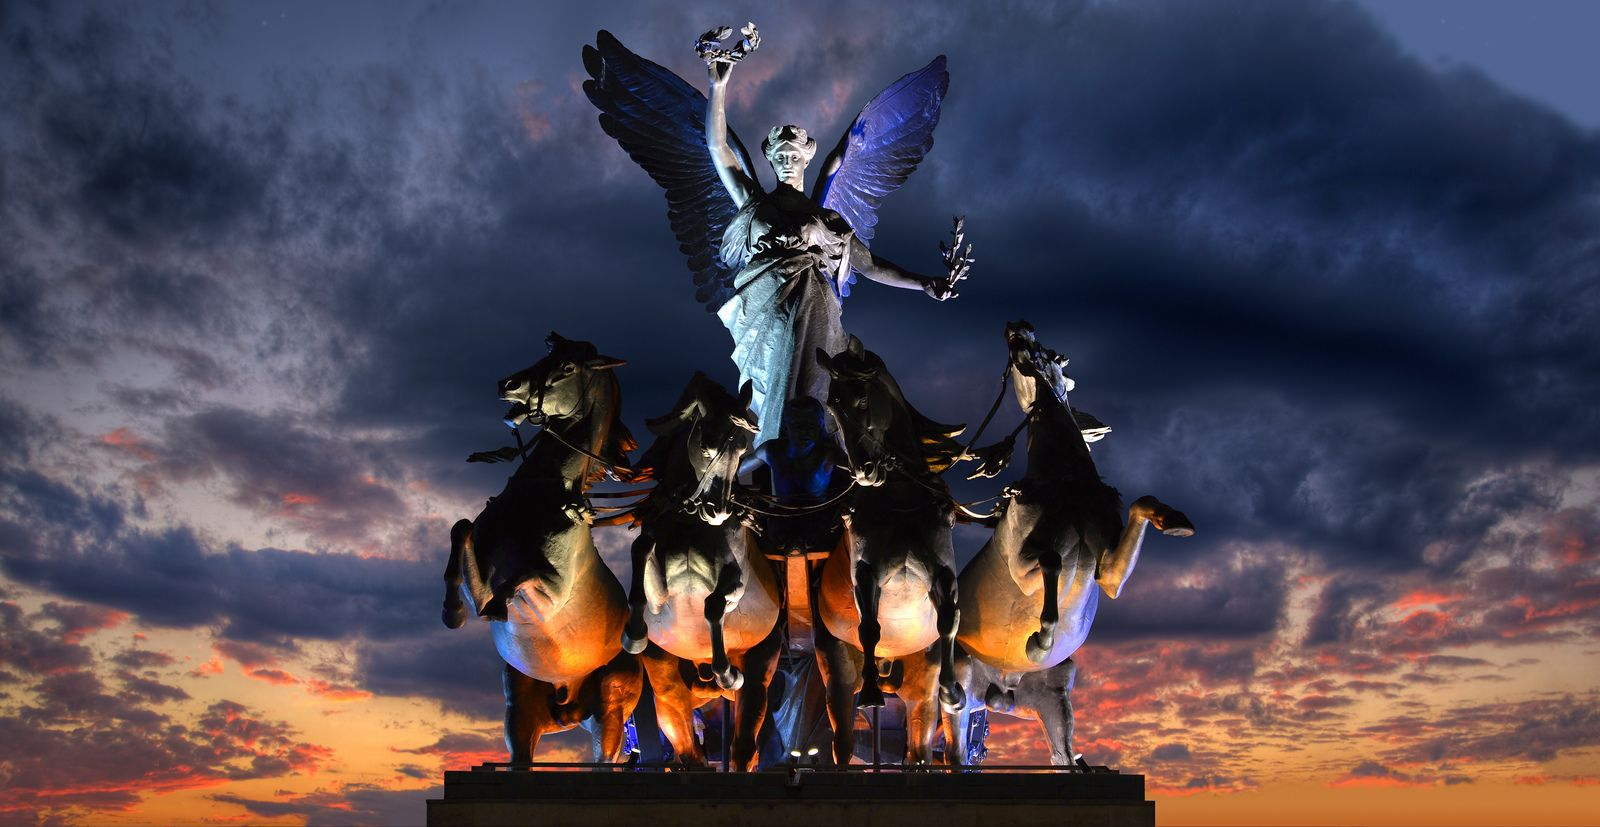 Chariot of fire | A look at the quadriga atop London's Wellington Arch in Hyde Park.  #London #UK #sharkshock #photography #arch